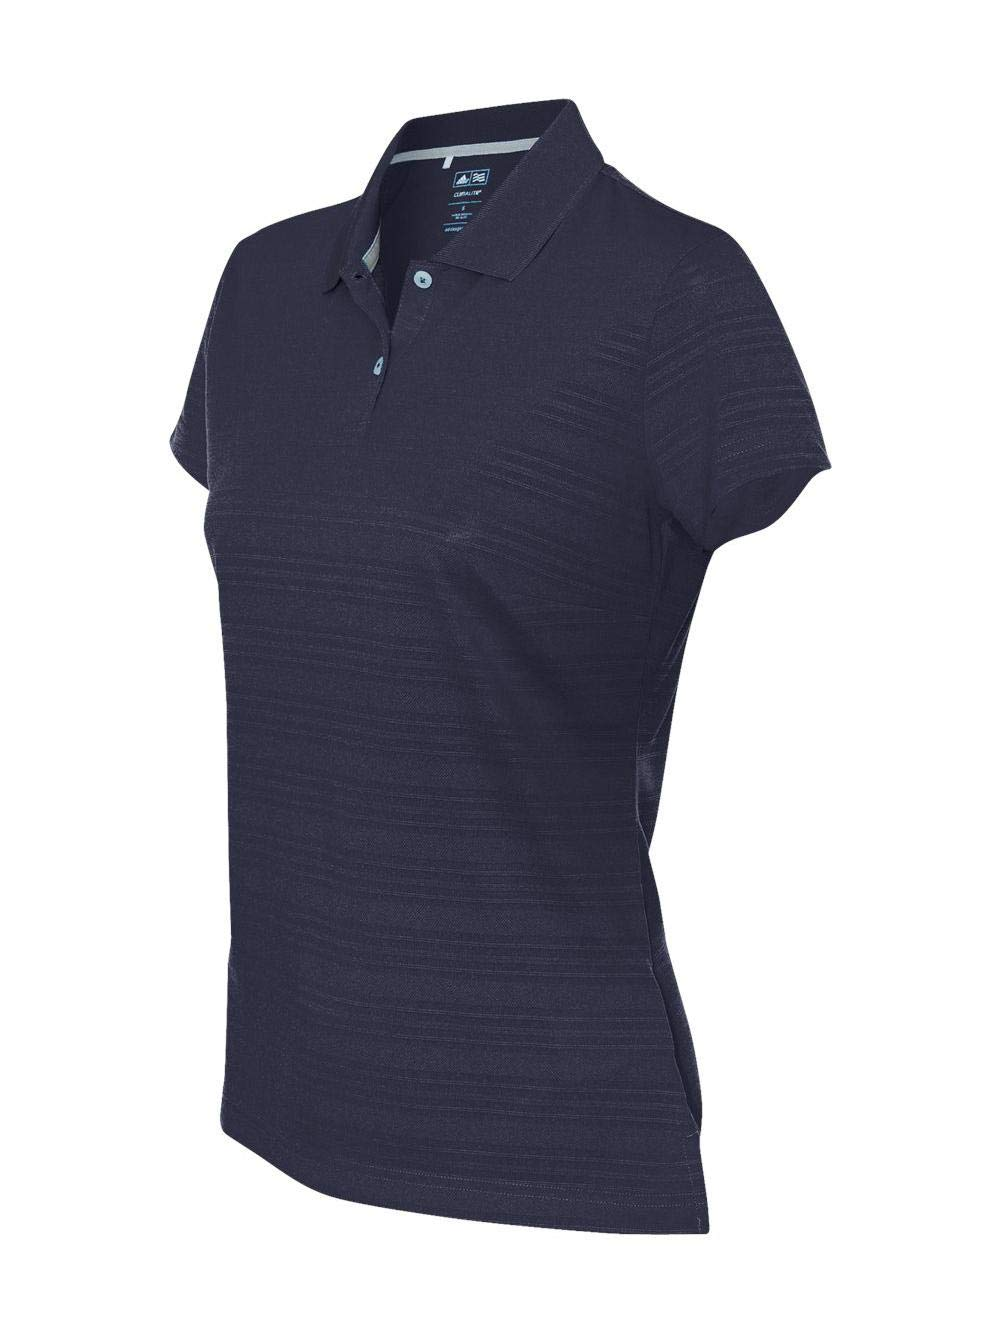 adidas Golf Womens Climalite Textured Short-Sleeve Polo (A162) -Navy -S